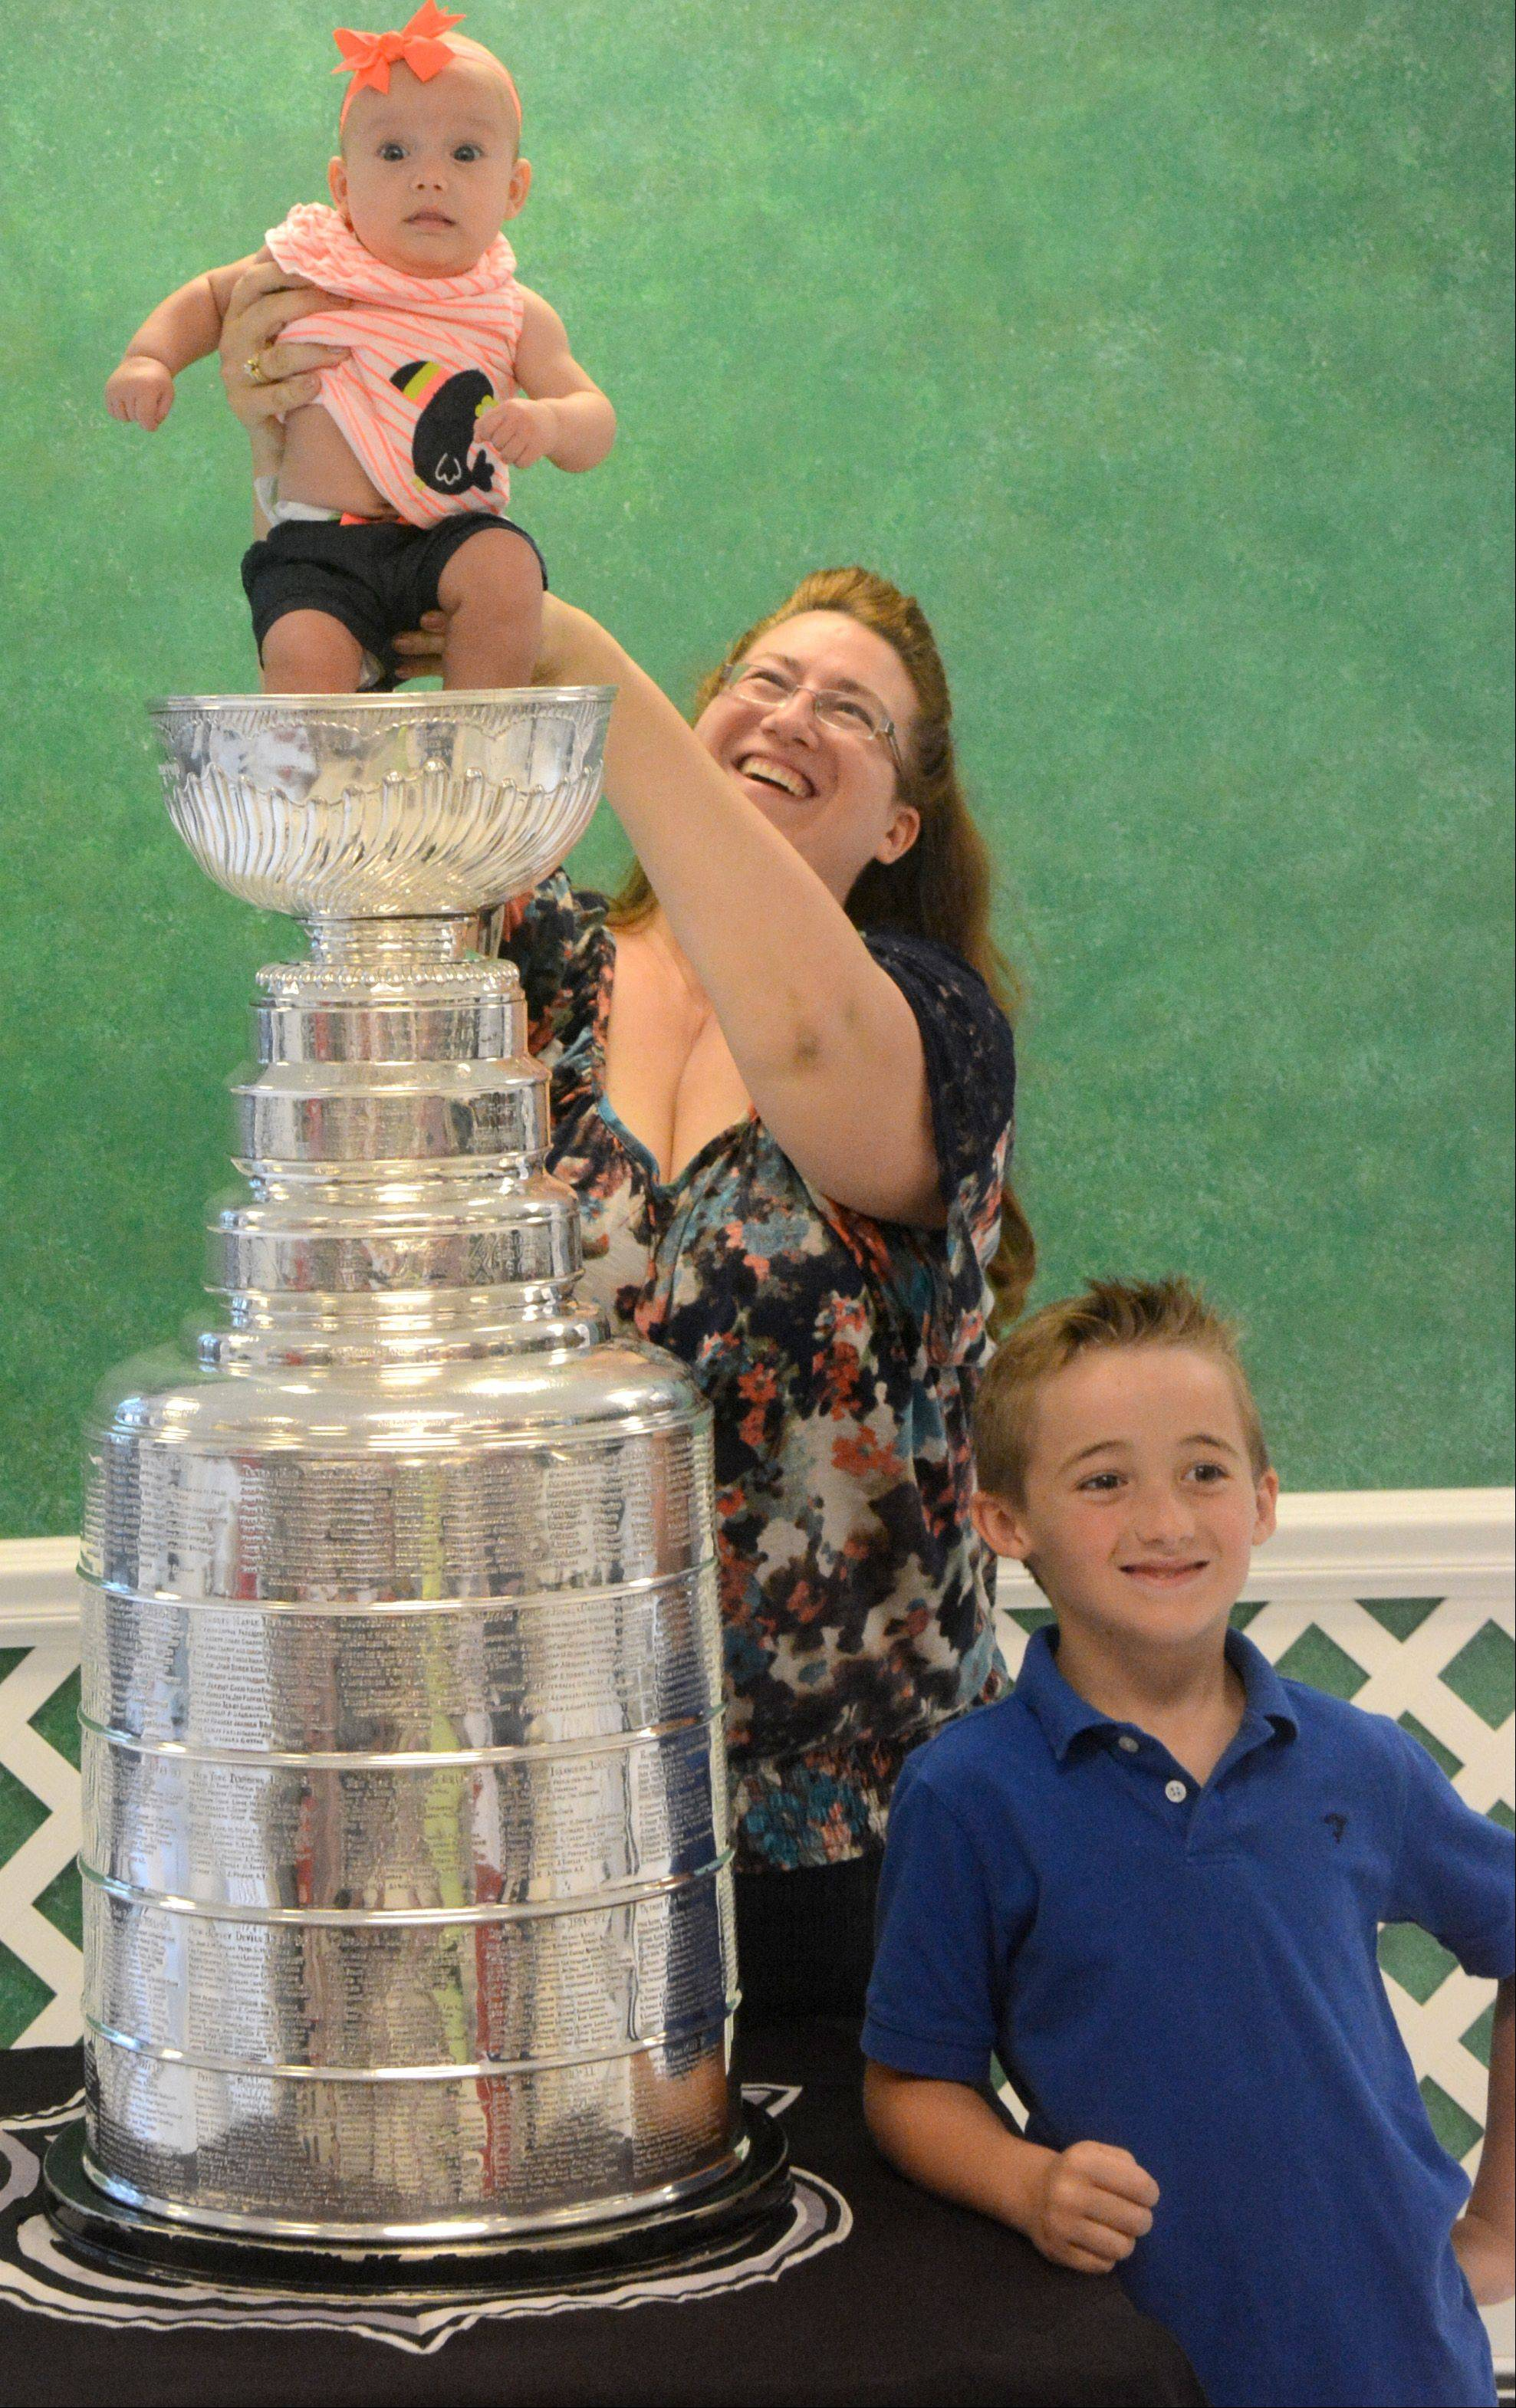 Candace Lewnard, of Mount Prospect, holds daughter Sofia, 1, in the Stanley Cup as brother Michale, 7, poses for a photo at the Daily Herald office Friday in Arlington Heights.